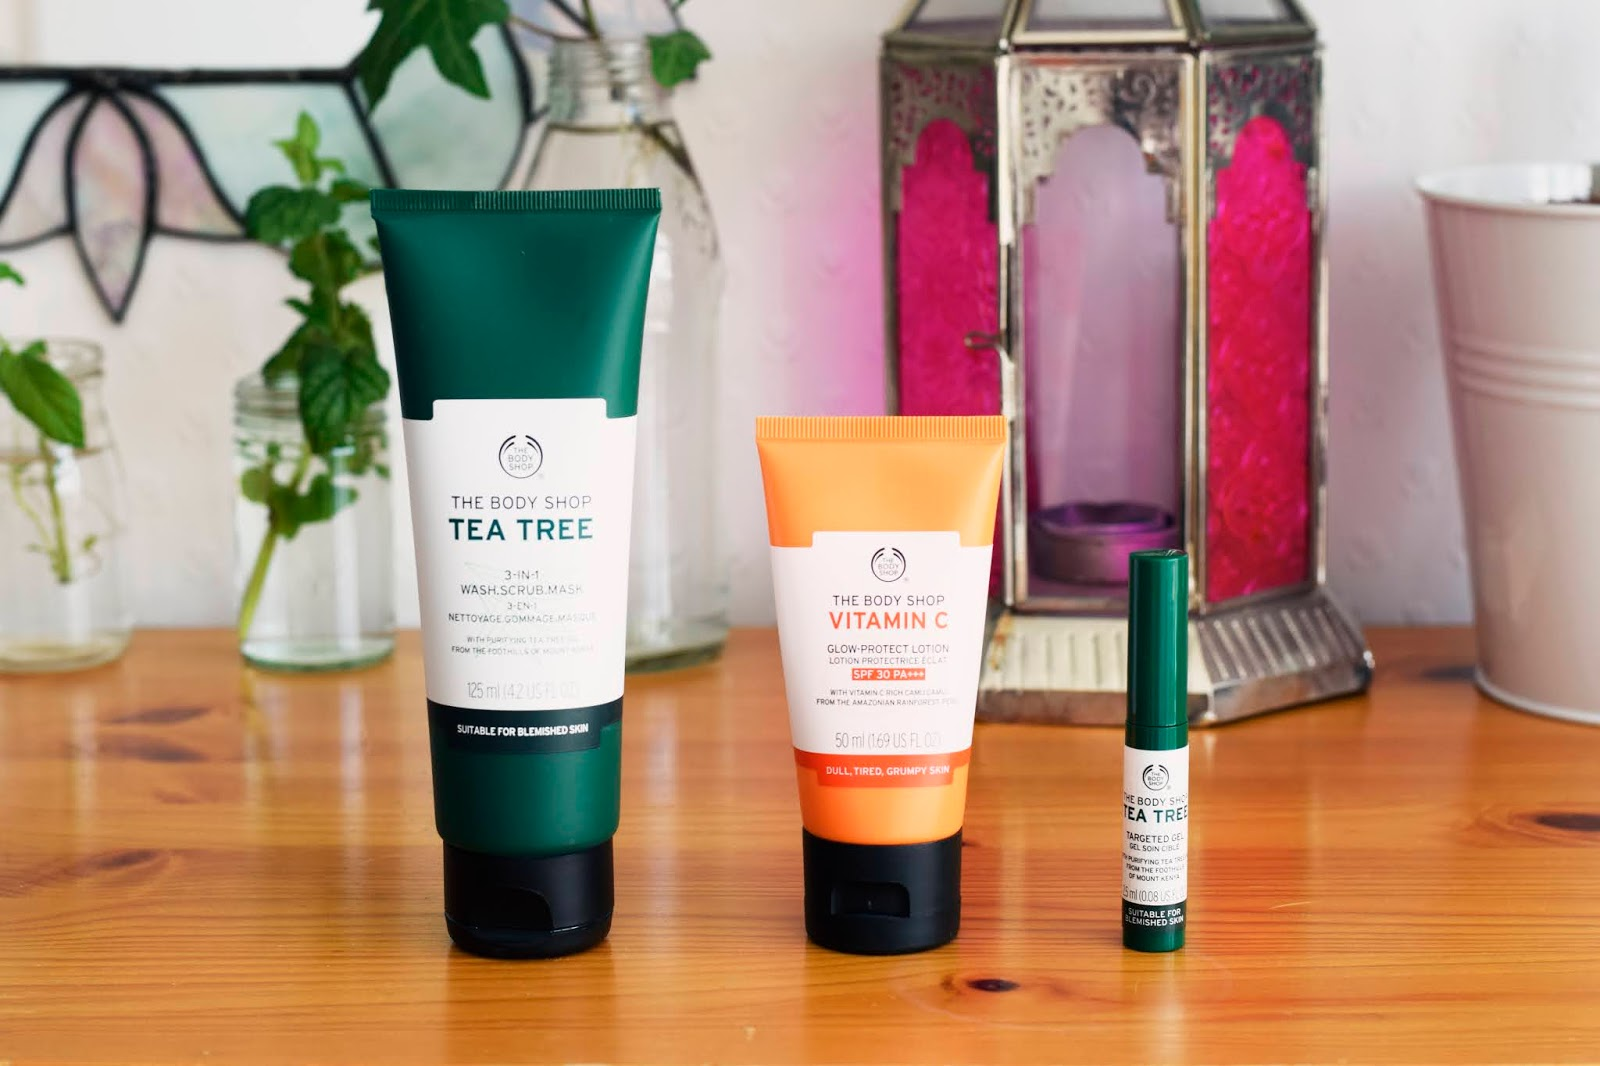 Photo of the 3 in 1 wash, the Vitamin C Location and the Tea Tree Targeted Gel